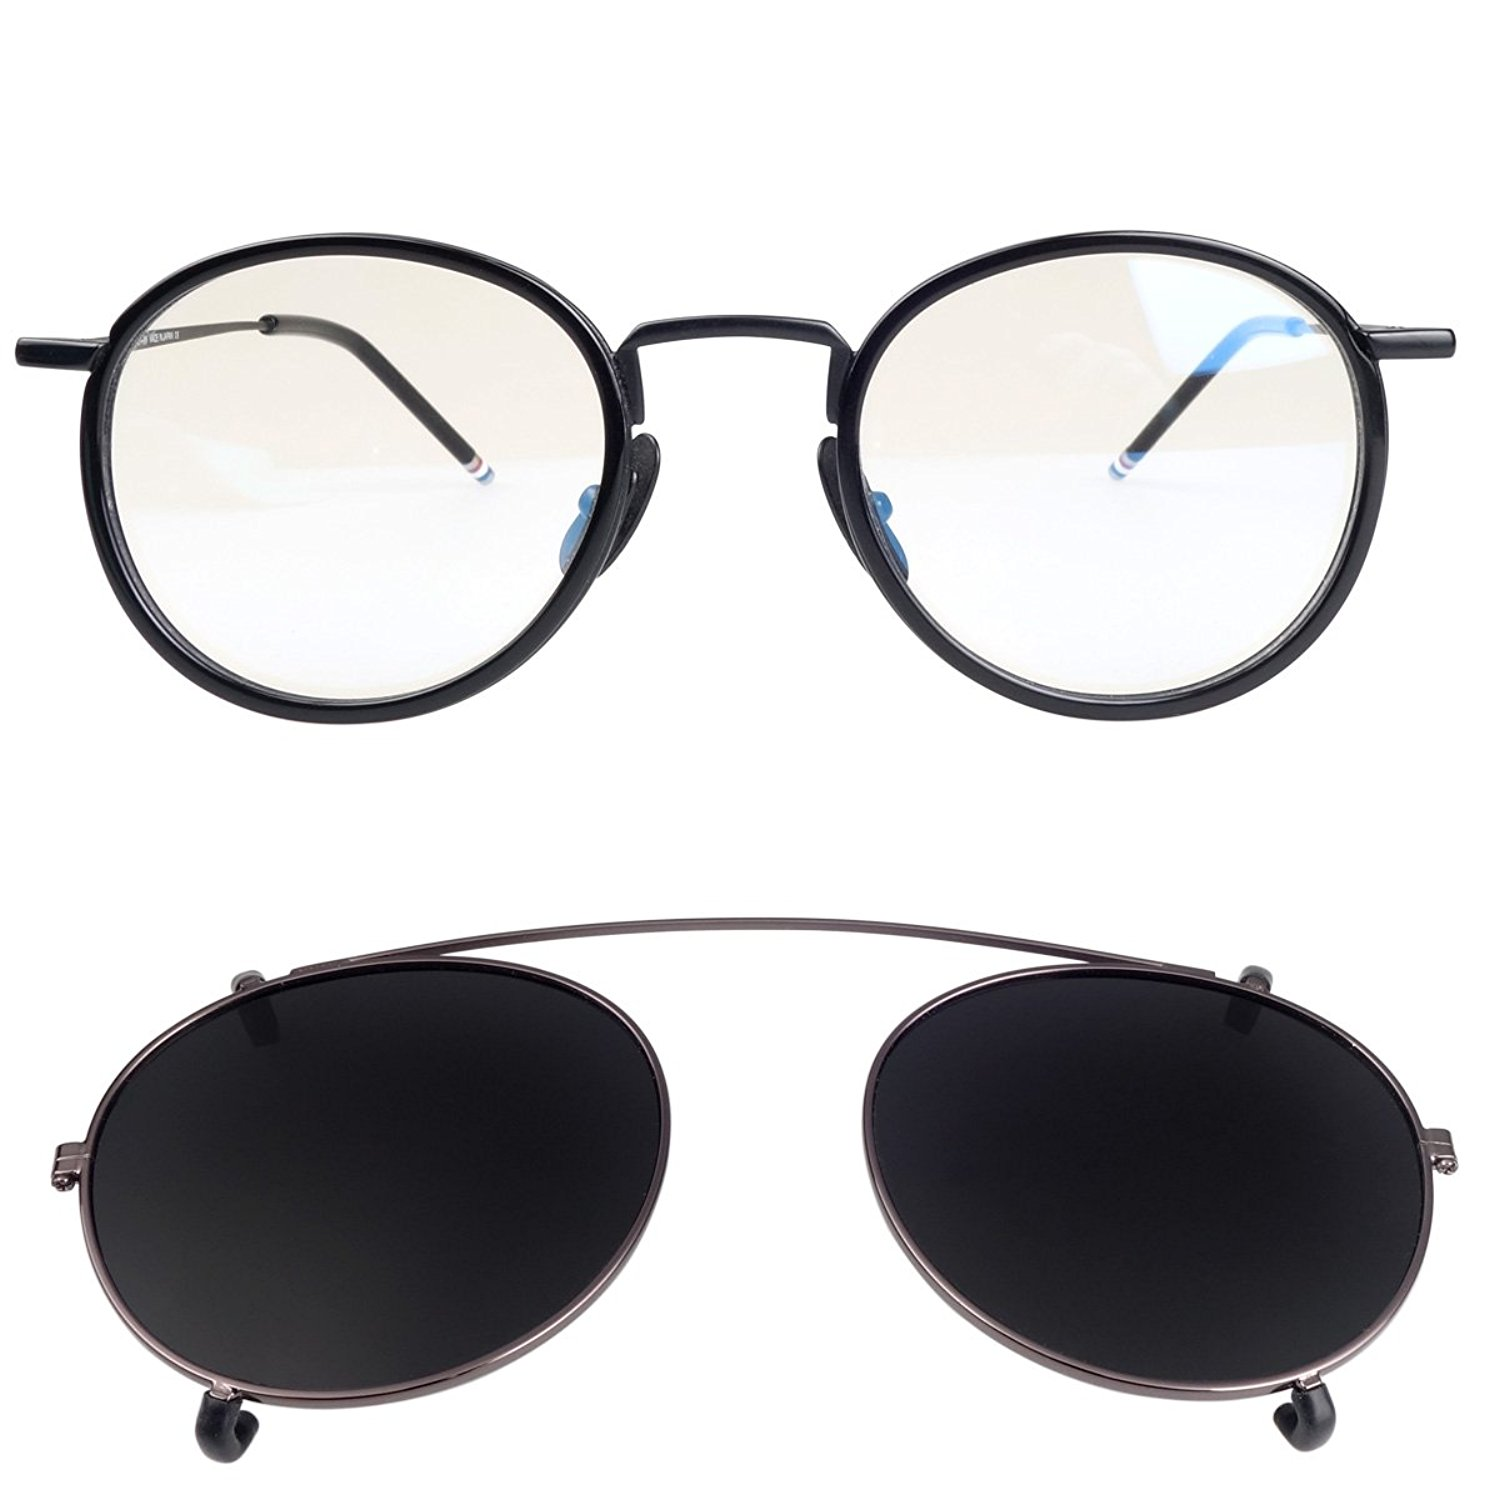 405e5d1012 Get Quotations · New York Fashion Round Optical Eyeglasses Frames with  Polarized Lens Clip